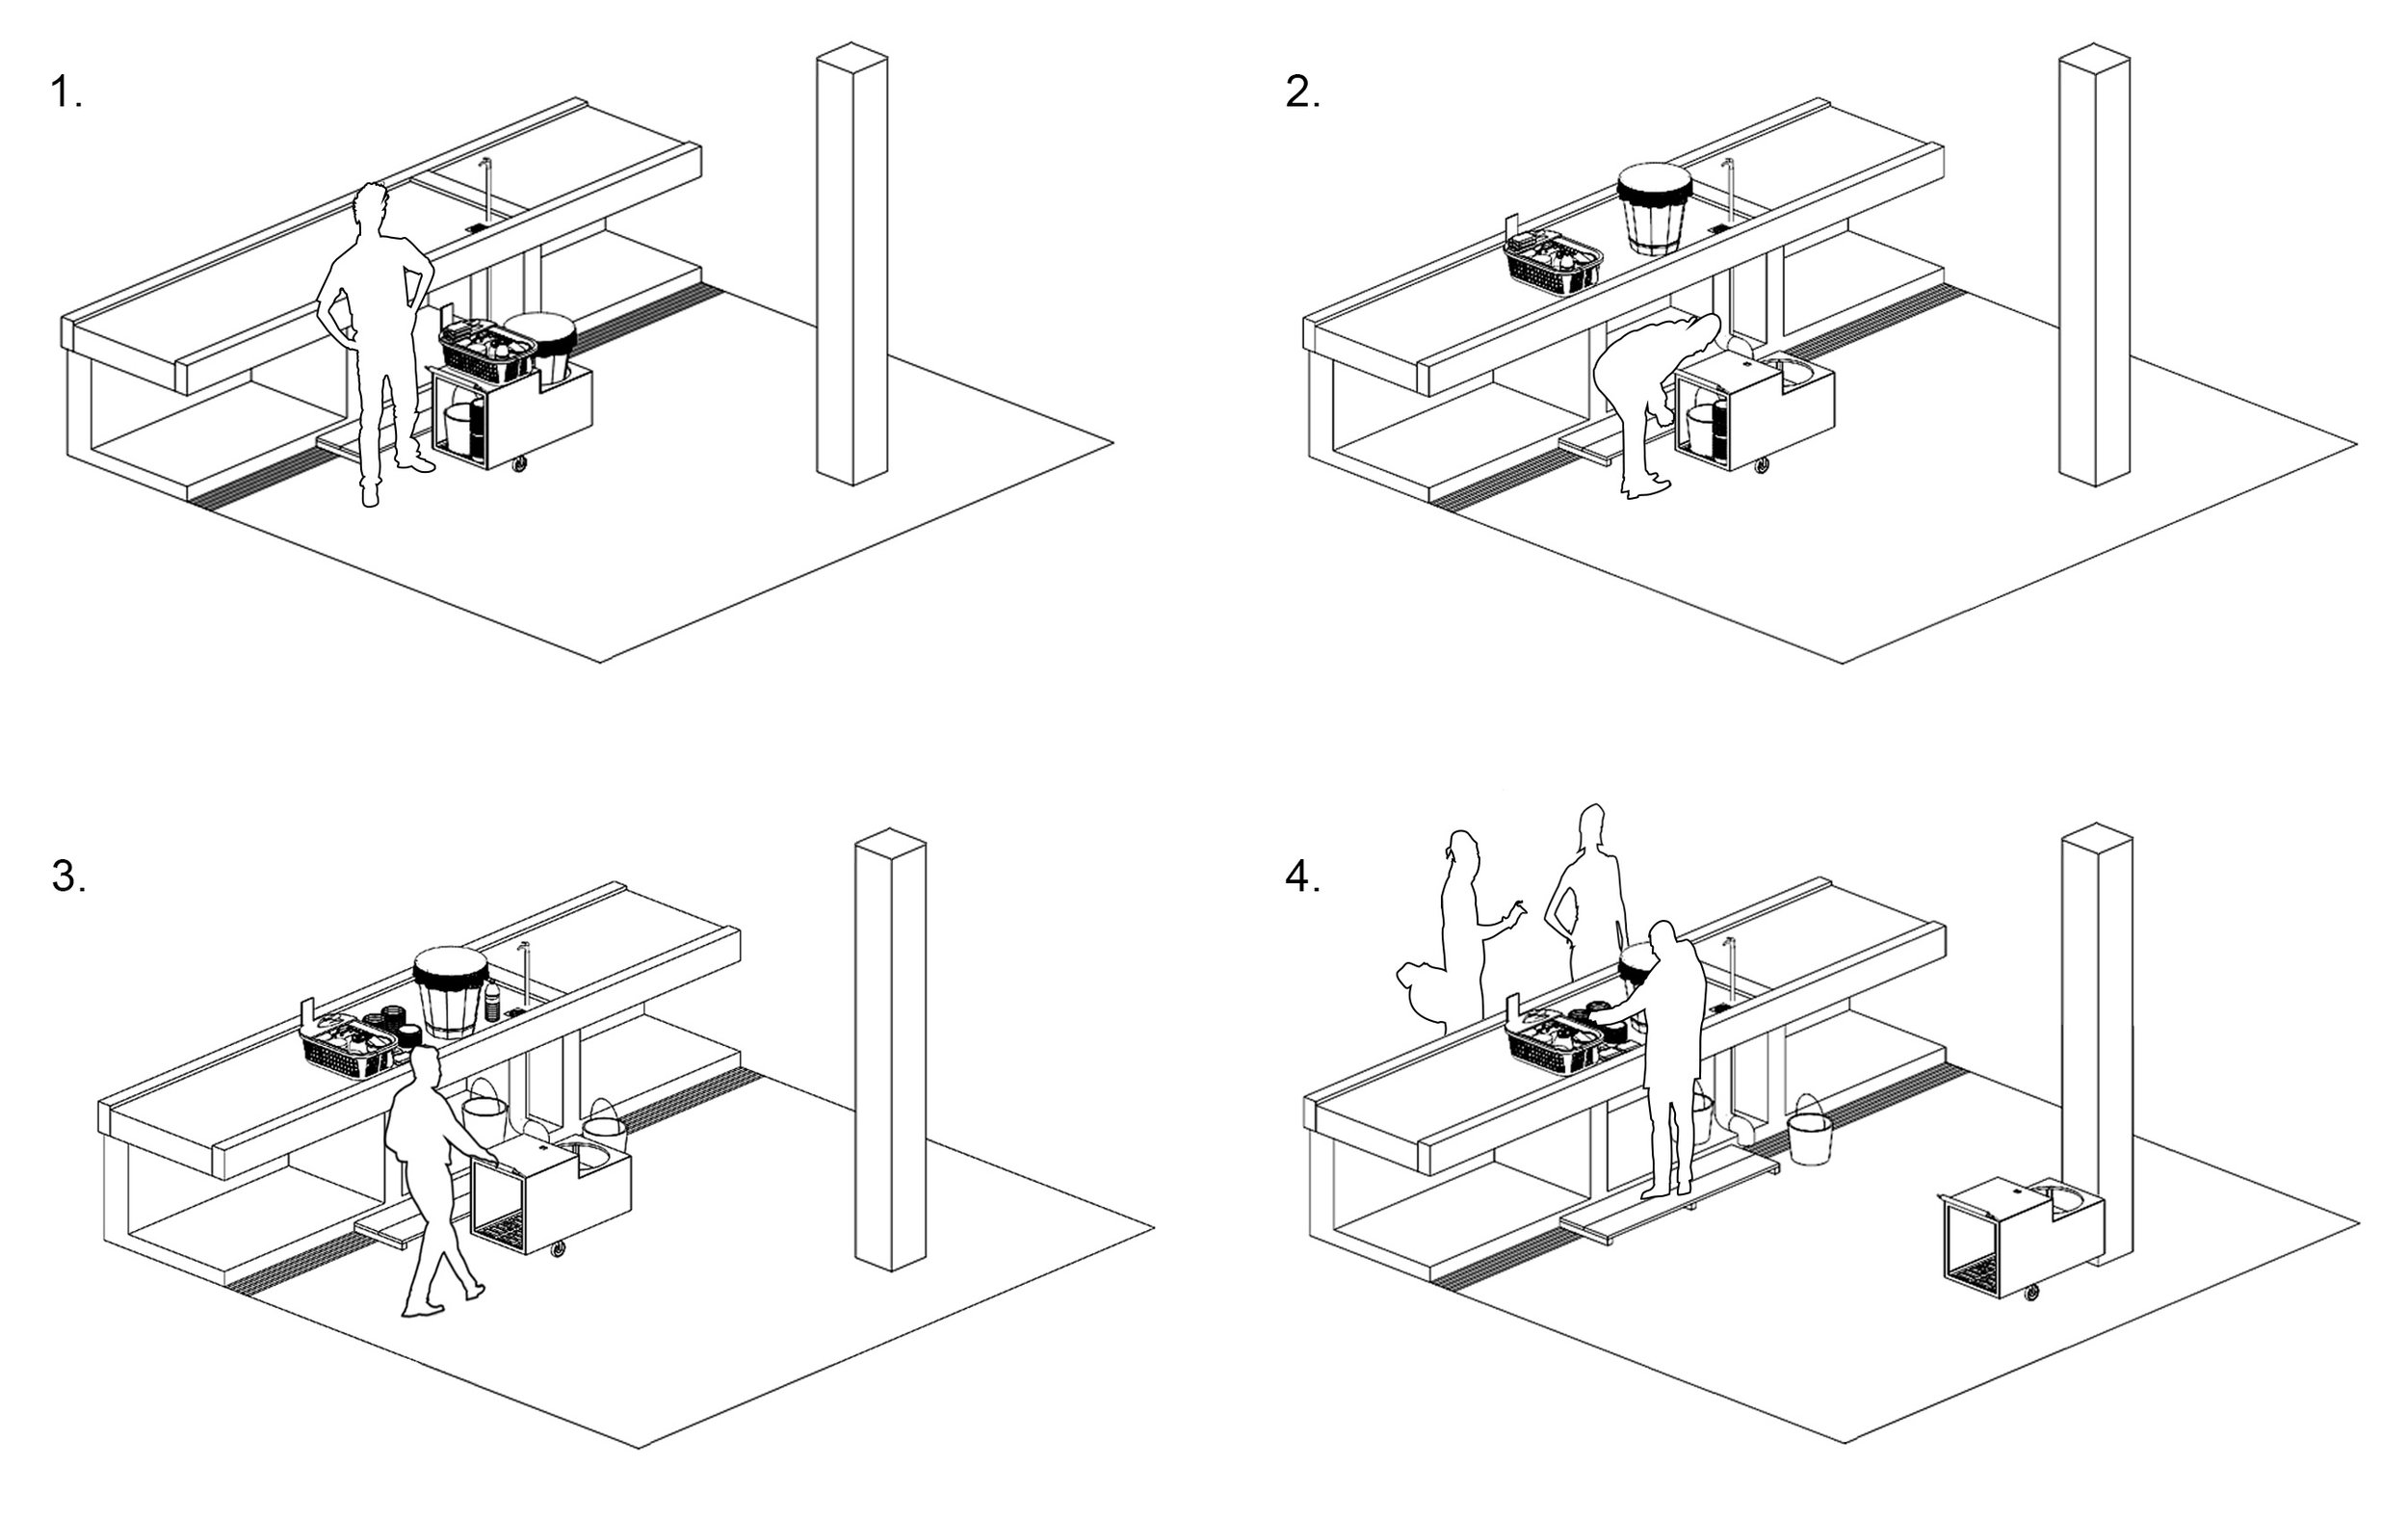 figure 6: Stall set-up and assemble method at Petanak Central Market with the mini-trolley.